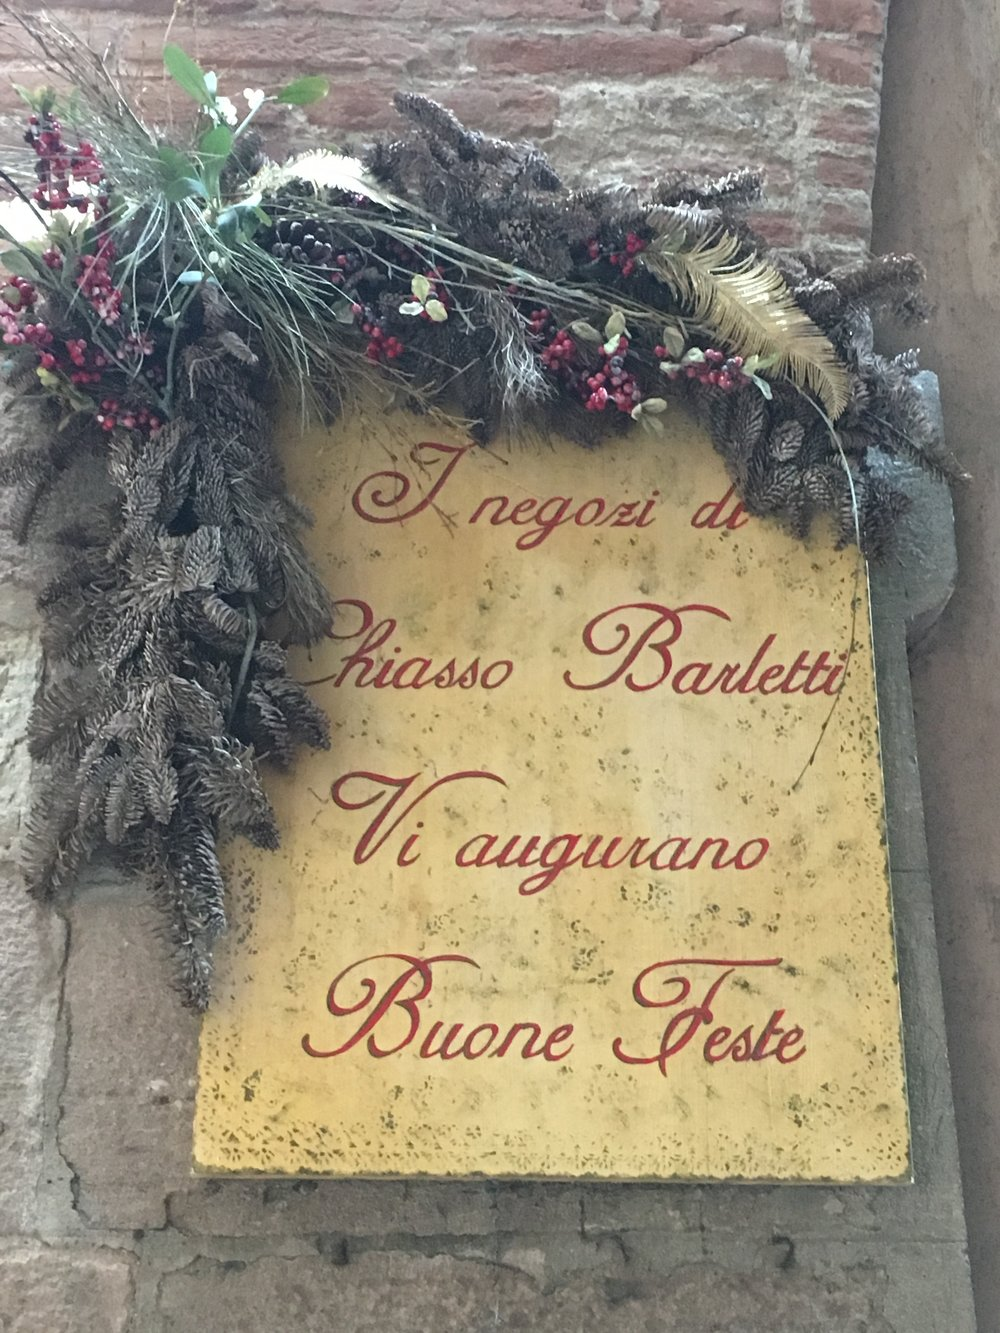 Chiasso Barletti is a small street in Lucca with big Christmas spirit.